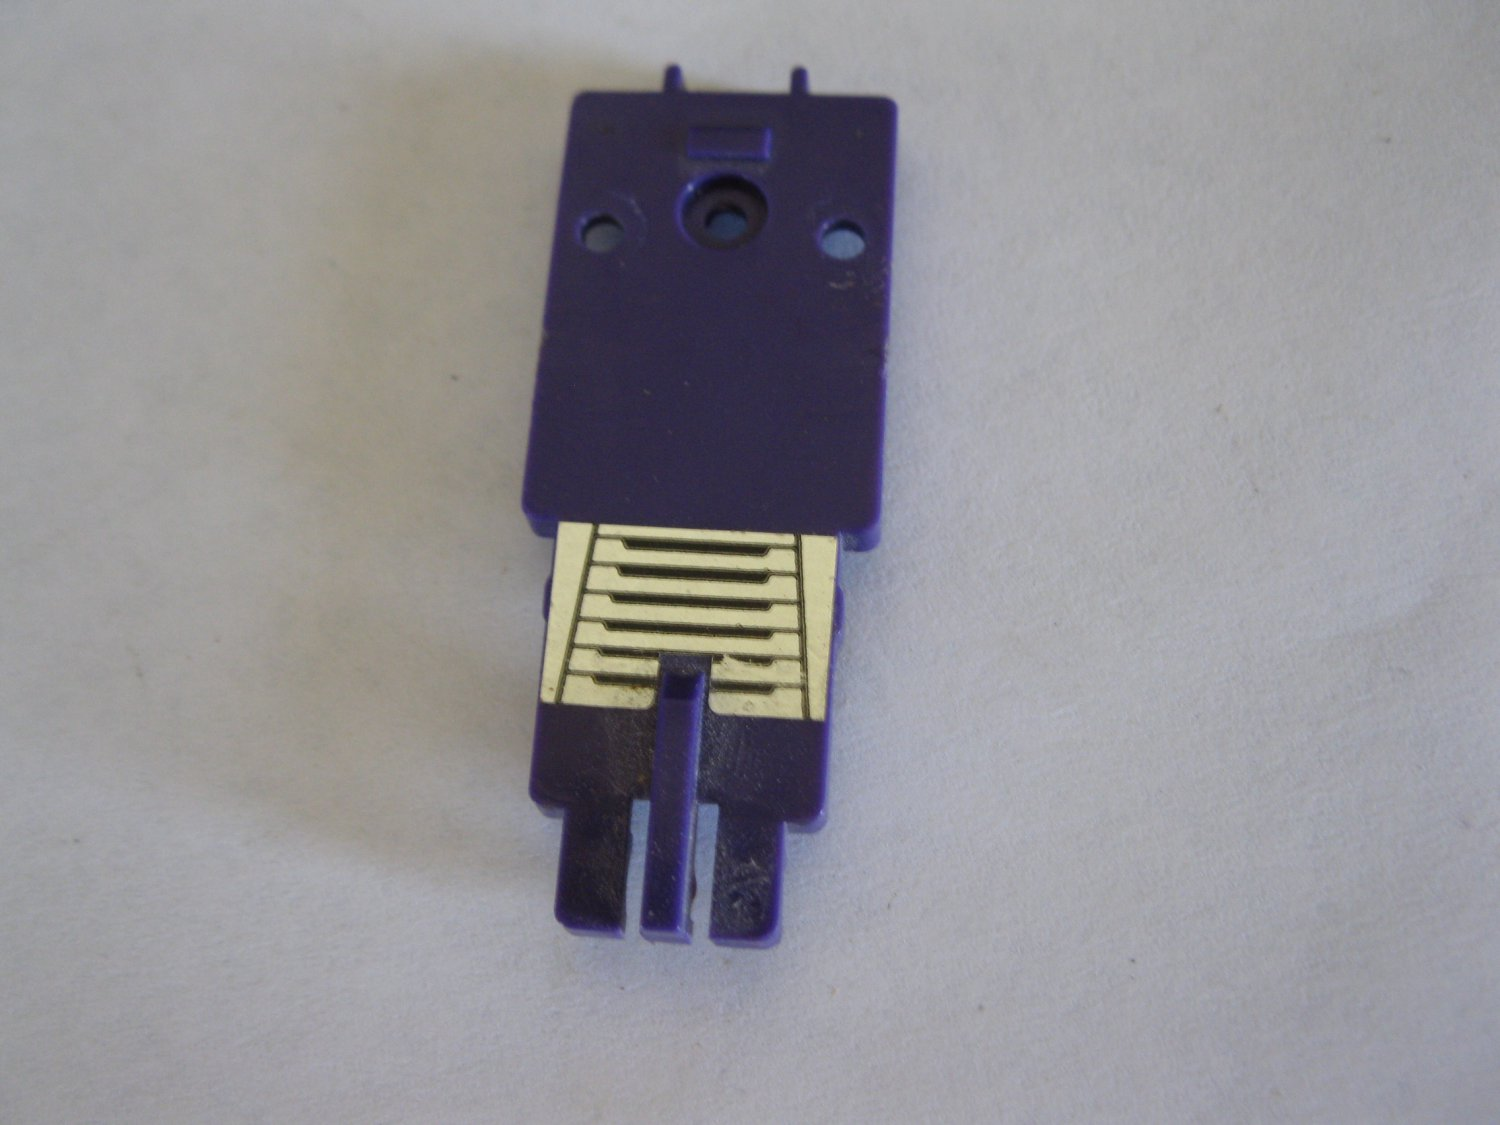 G1 Transformers Action figure part: 1984 Bonecrusher - Purple Body Front Section